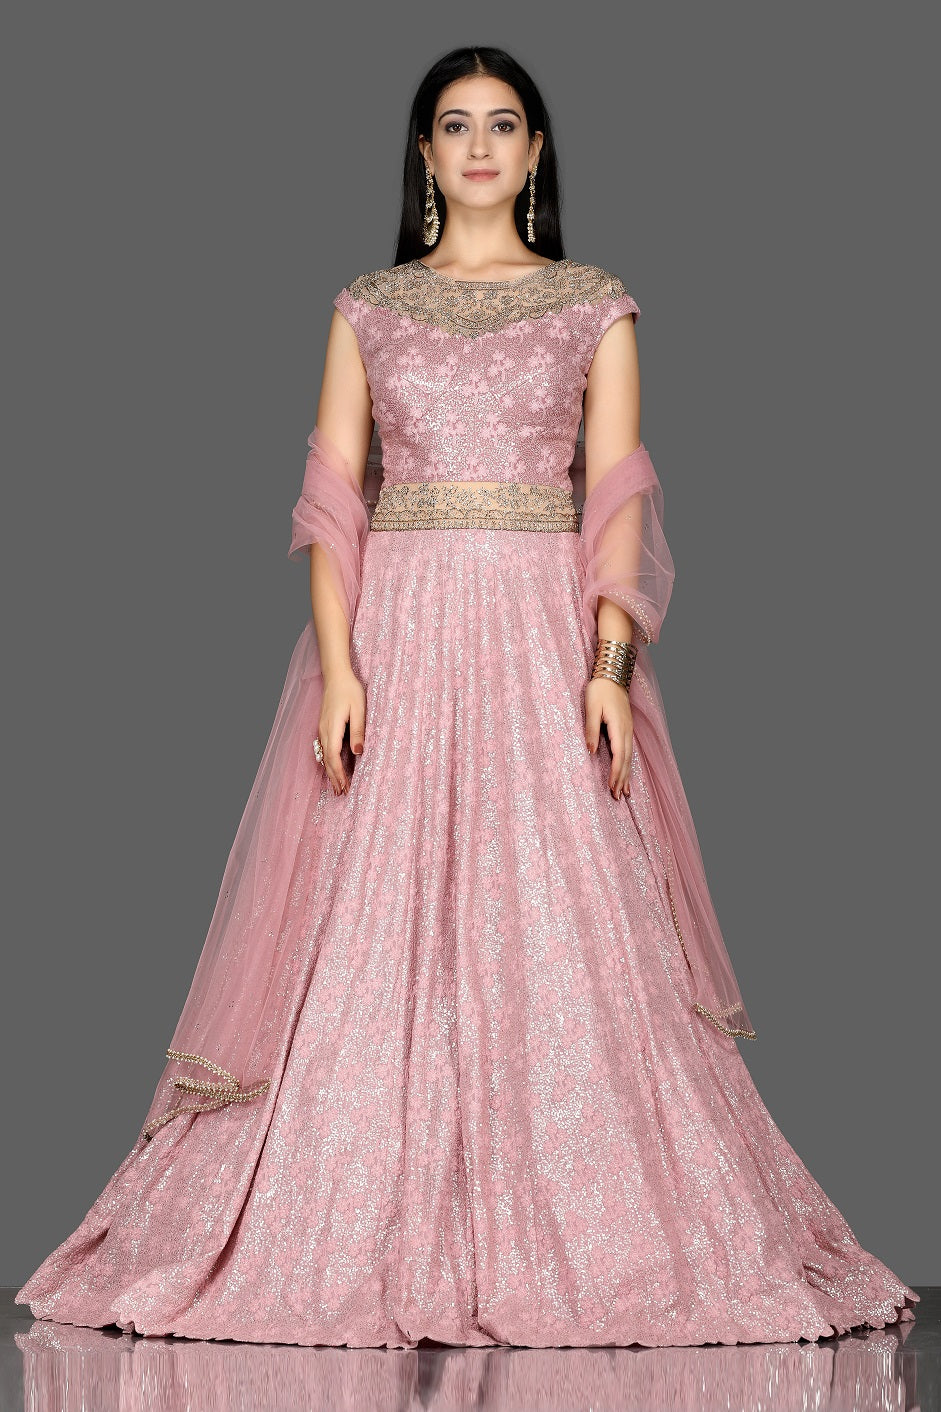 Shop beautiful pink embroidered floorlength Anarkali with dupatta online in USA. Shine at weddings and special occasions with beautiful designer lehengas, Anarkali suits from Pure Elegance Indian clothing store in USA.-full view